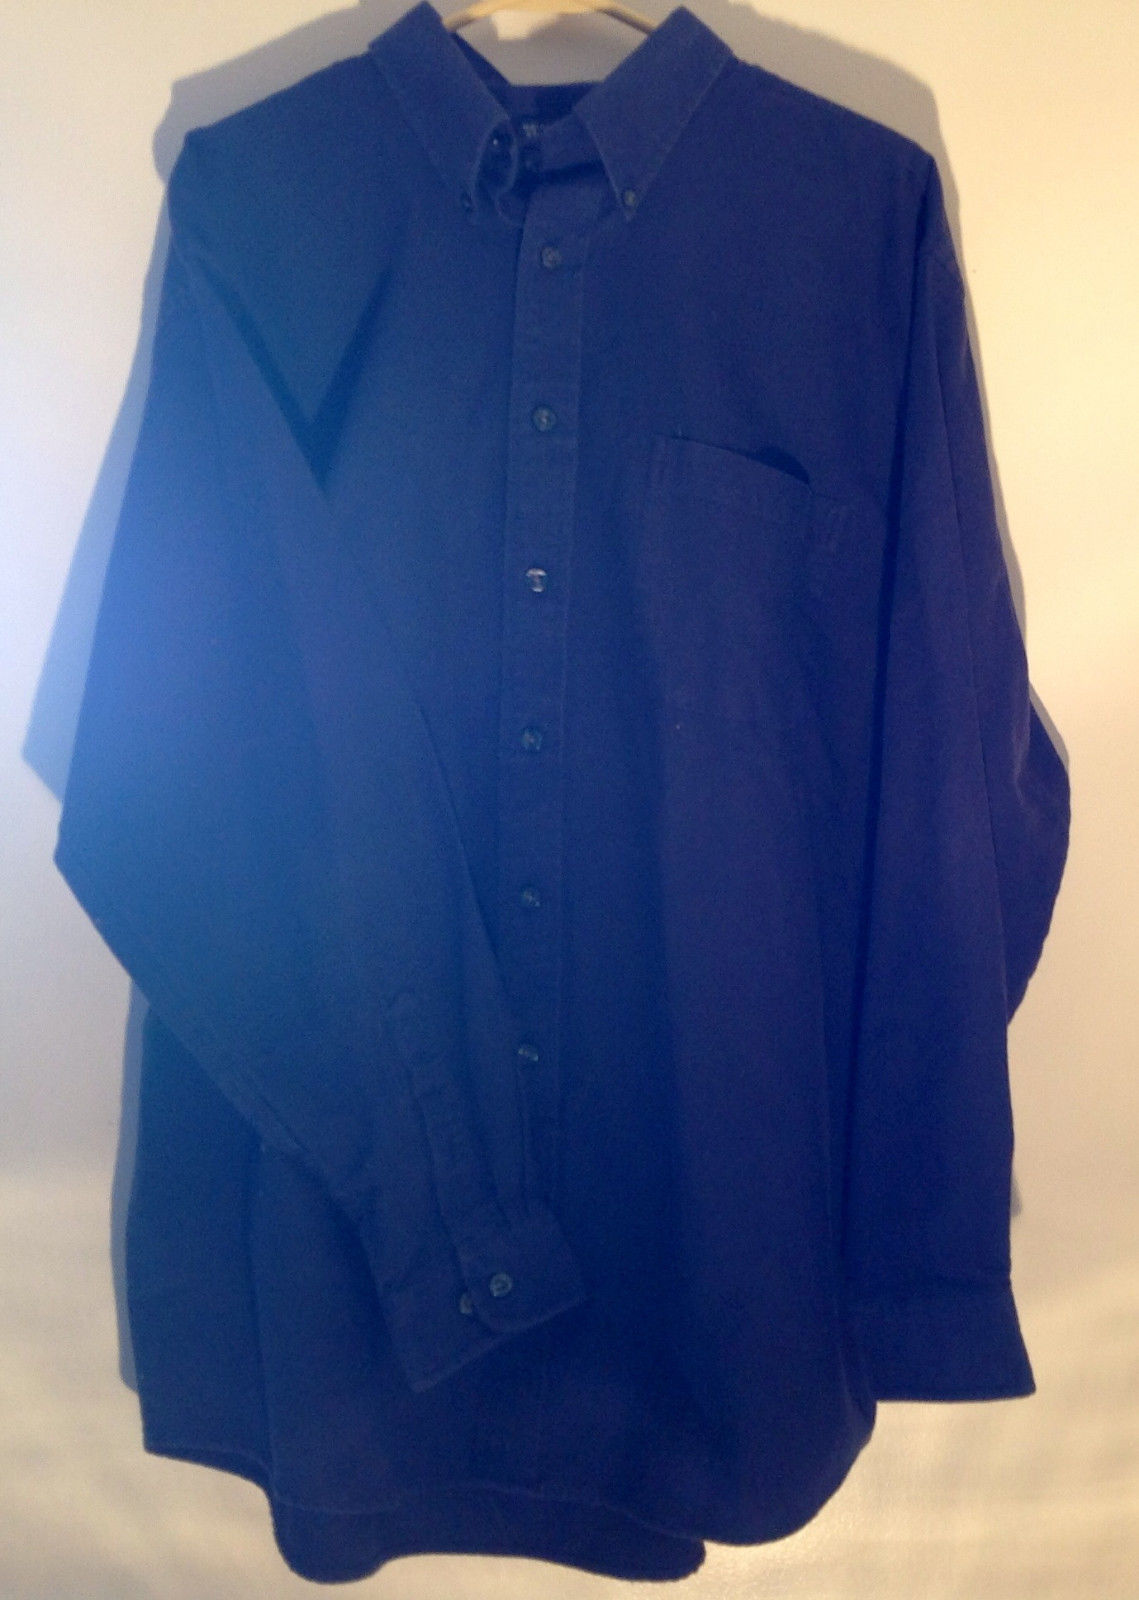 Dark Navy Blue Van Heusen Collared Long Sleeve Casual Pocket Shirt  Size LT